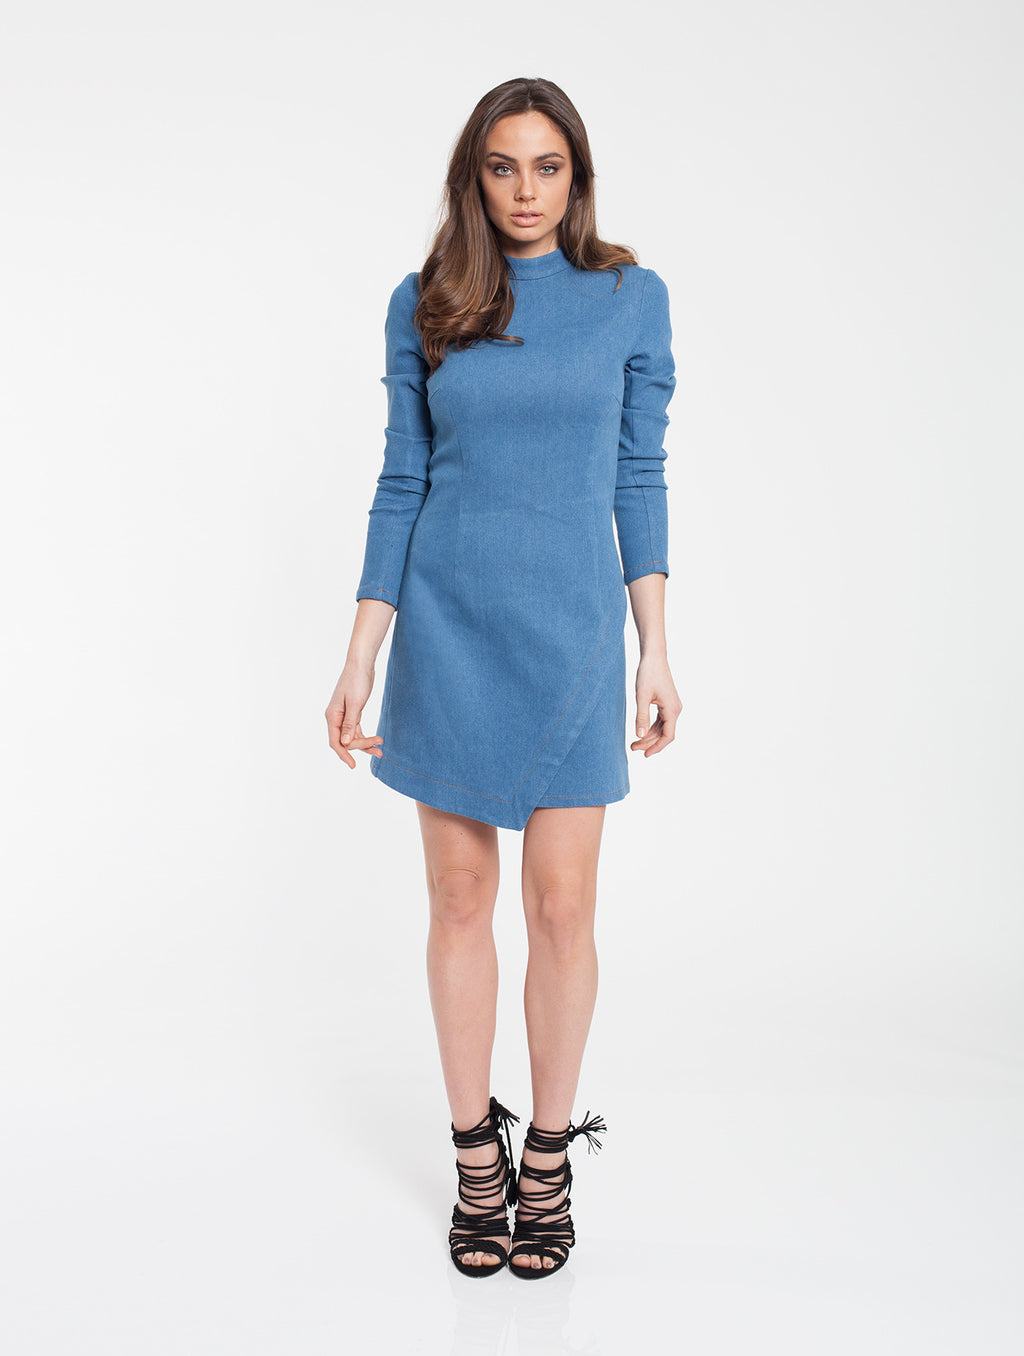 Mia Long Sleeve Dress